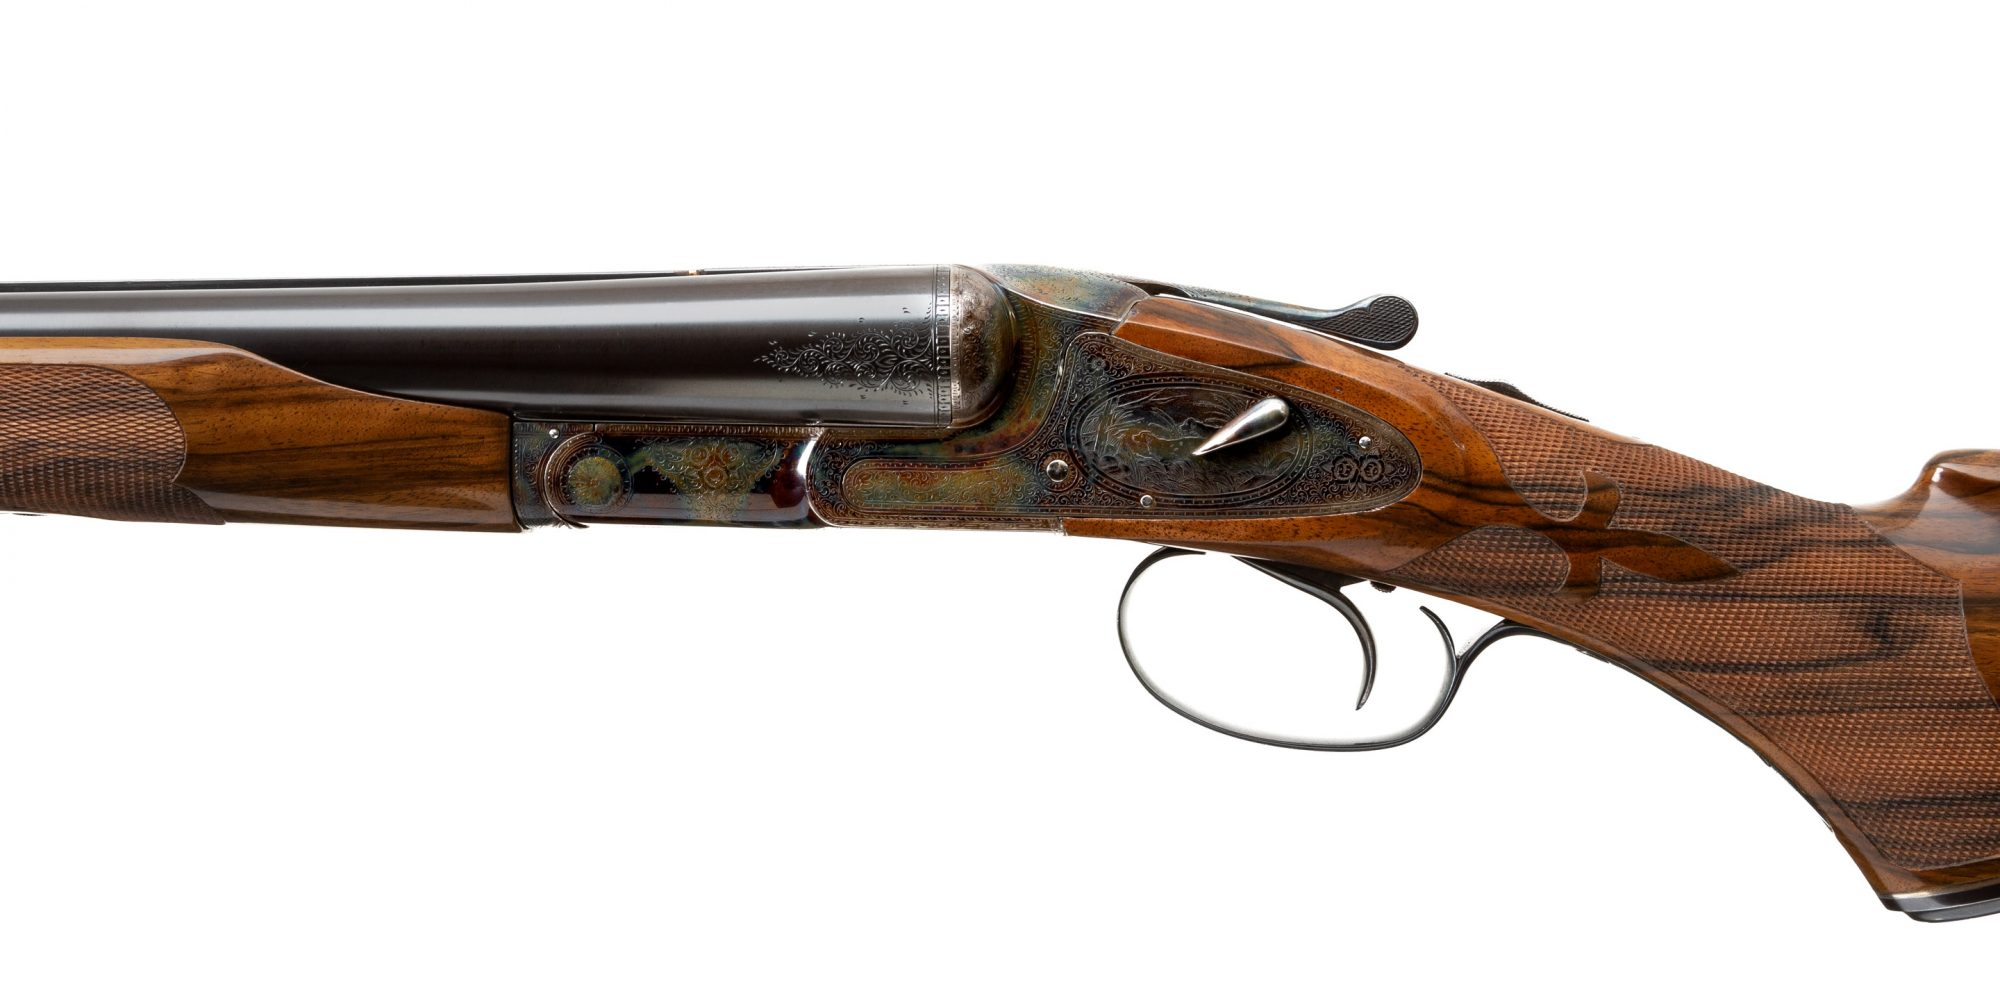 Photo of a pre-owned L.C. Smith 5E 12 gauge double, for sale as-is by Turnbull Restoration of Bloomfield, NY